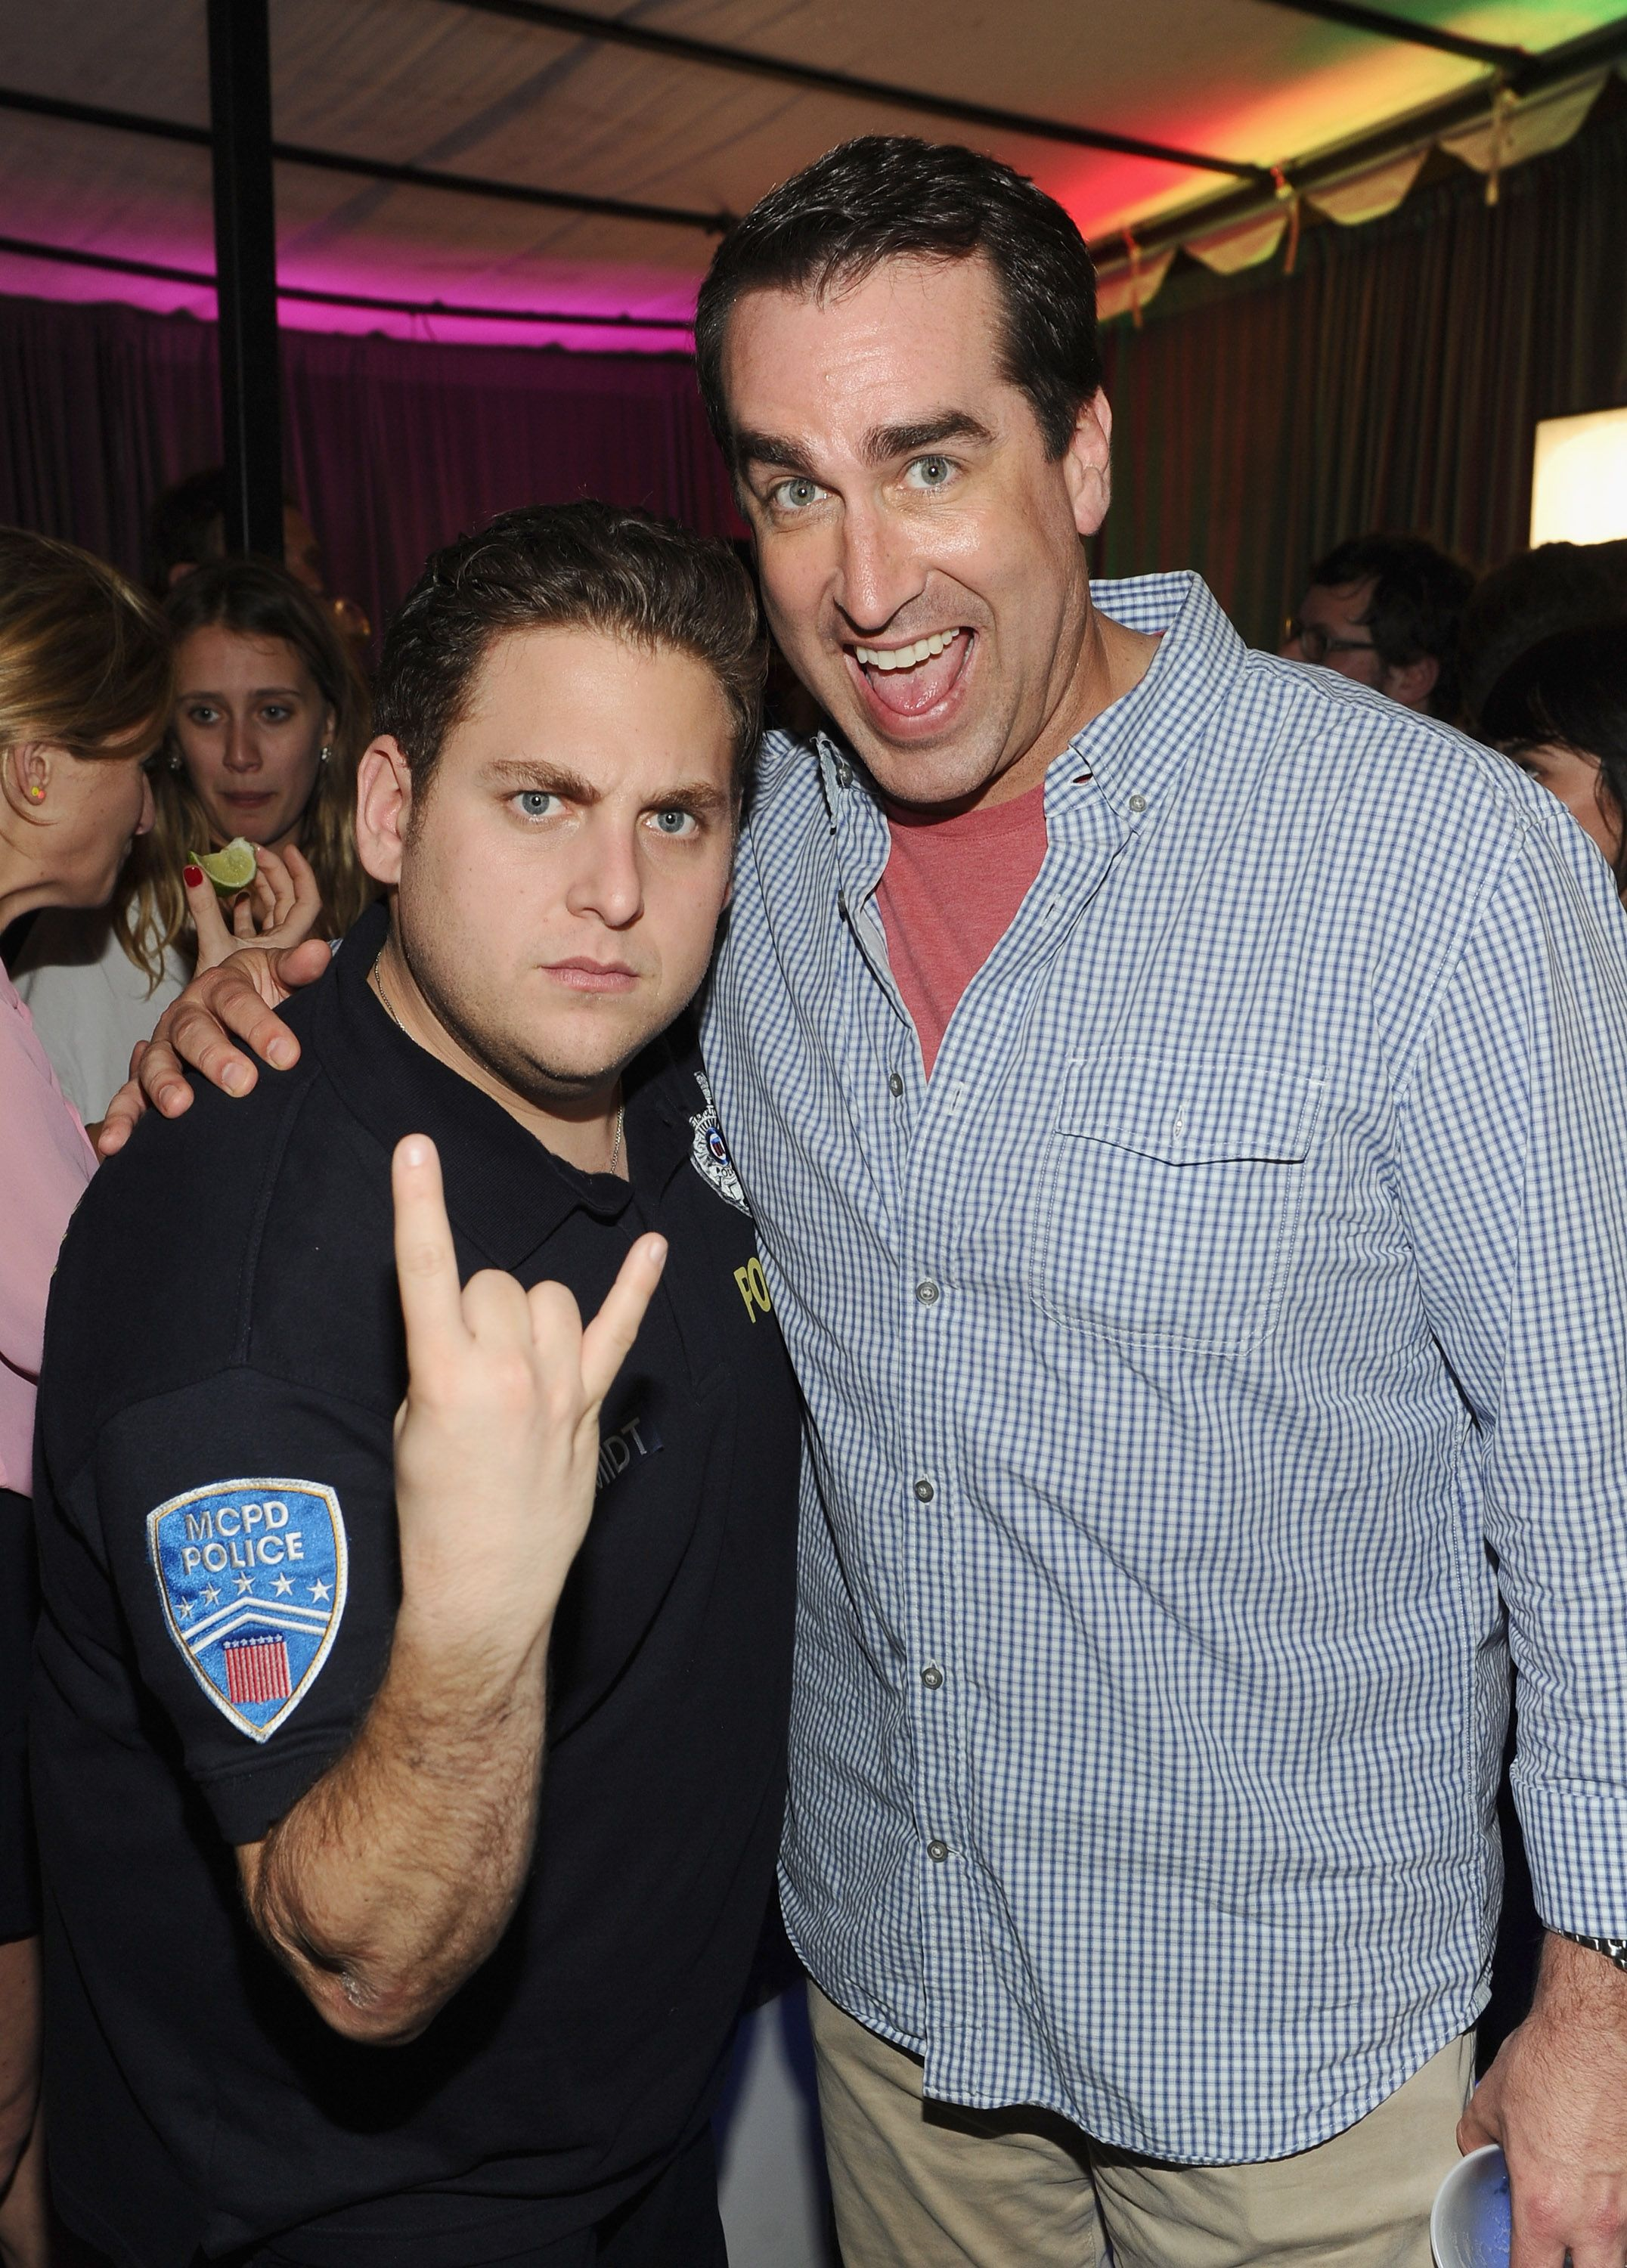 rob riggle comedy central presentsrob riggle instagram, rob riggle wiki, rob riggle other guys, rob riggle marine, rob riggle comedy central presents, rob riggle, rob riggle movies, rob riggle wife, rob riggle net worth, rob riggle's ski master academy, rob riggle usmc, rob riggle height, rob riggle step brothers, rob riggle stand up, rob riggle hangover, rob riggle code pink, rob riggle ski master, rob riggle age, rob riggle 22 jump street, rob riggle young